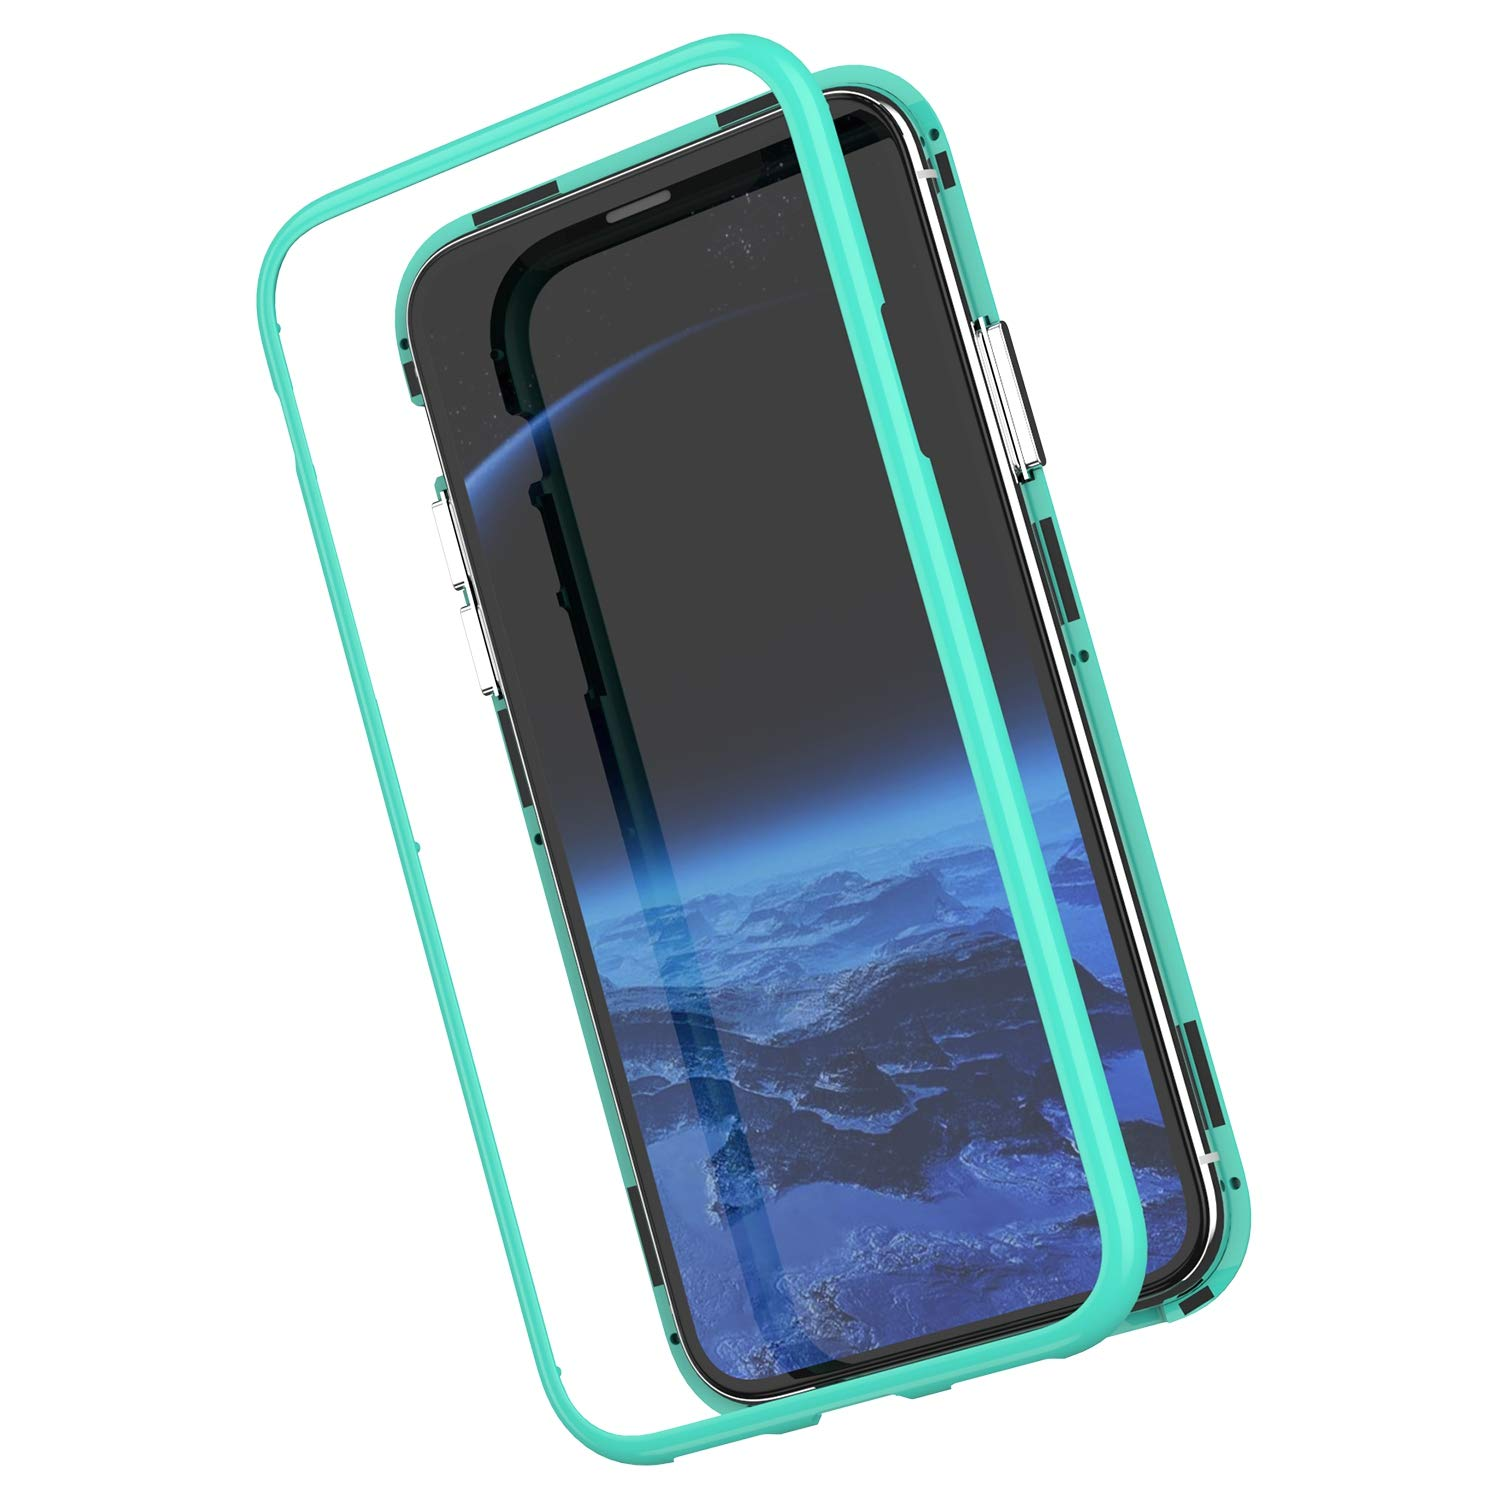 Felfy Compatible avec iPhone XR Coque Rouge,Adsorption Magn/étique Transparent Etui de Protection Avant et Arri/ère Verre Tremp/é Backcover Couverture Housse /à Rabat Antichoc Cover Case